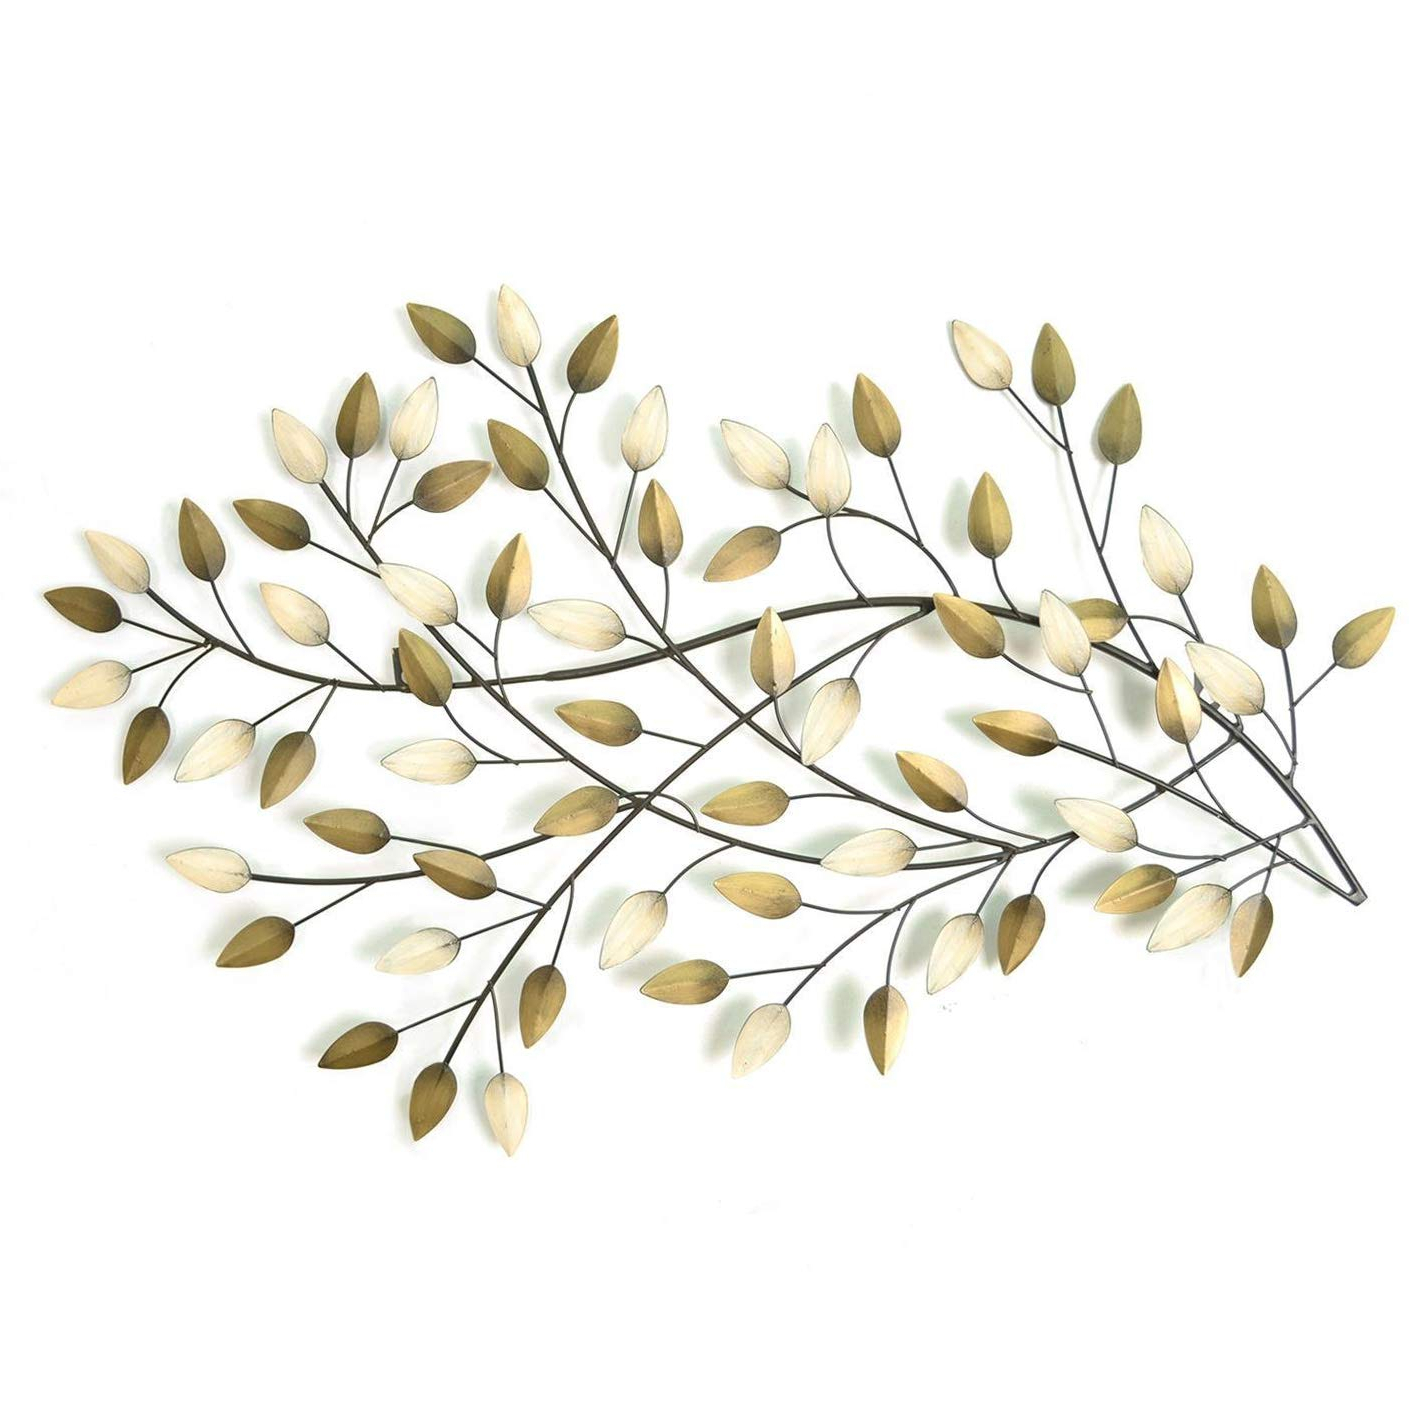 Amazon: Home Decor Stratton Shd0062 Home Blowing Leaves Wall Intended For Widely Used Blowing Leaves Wall Decor (View 13 of 20)